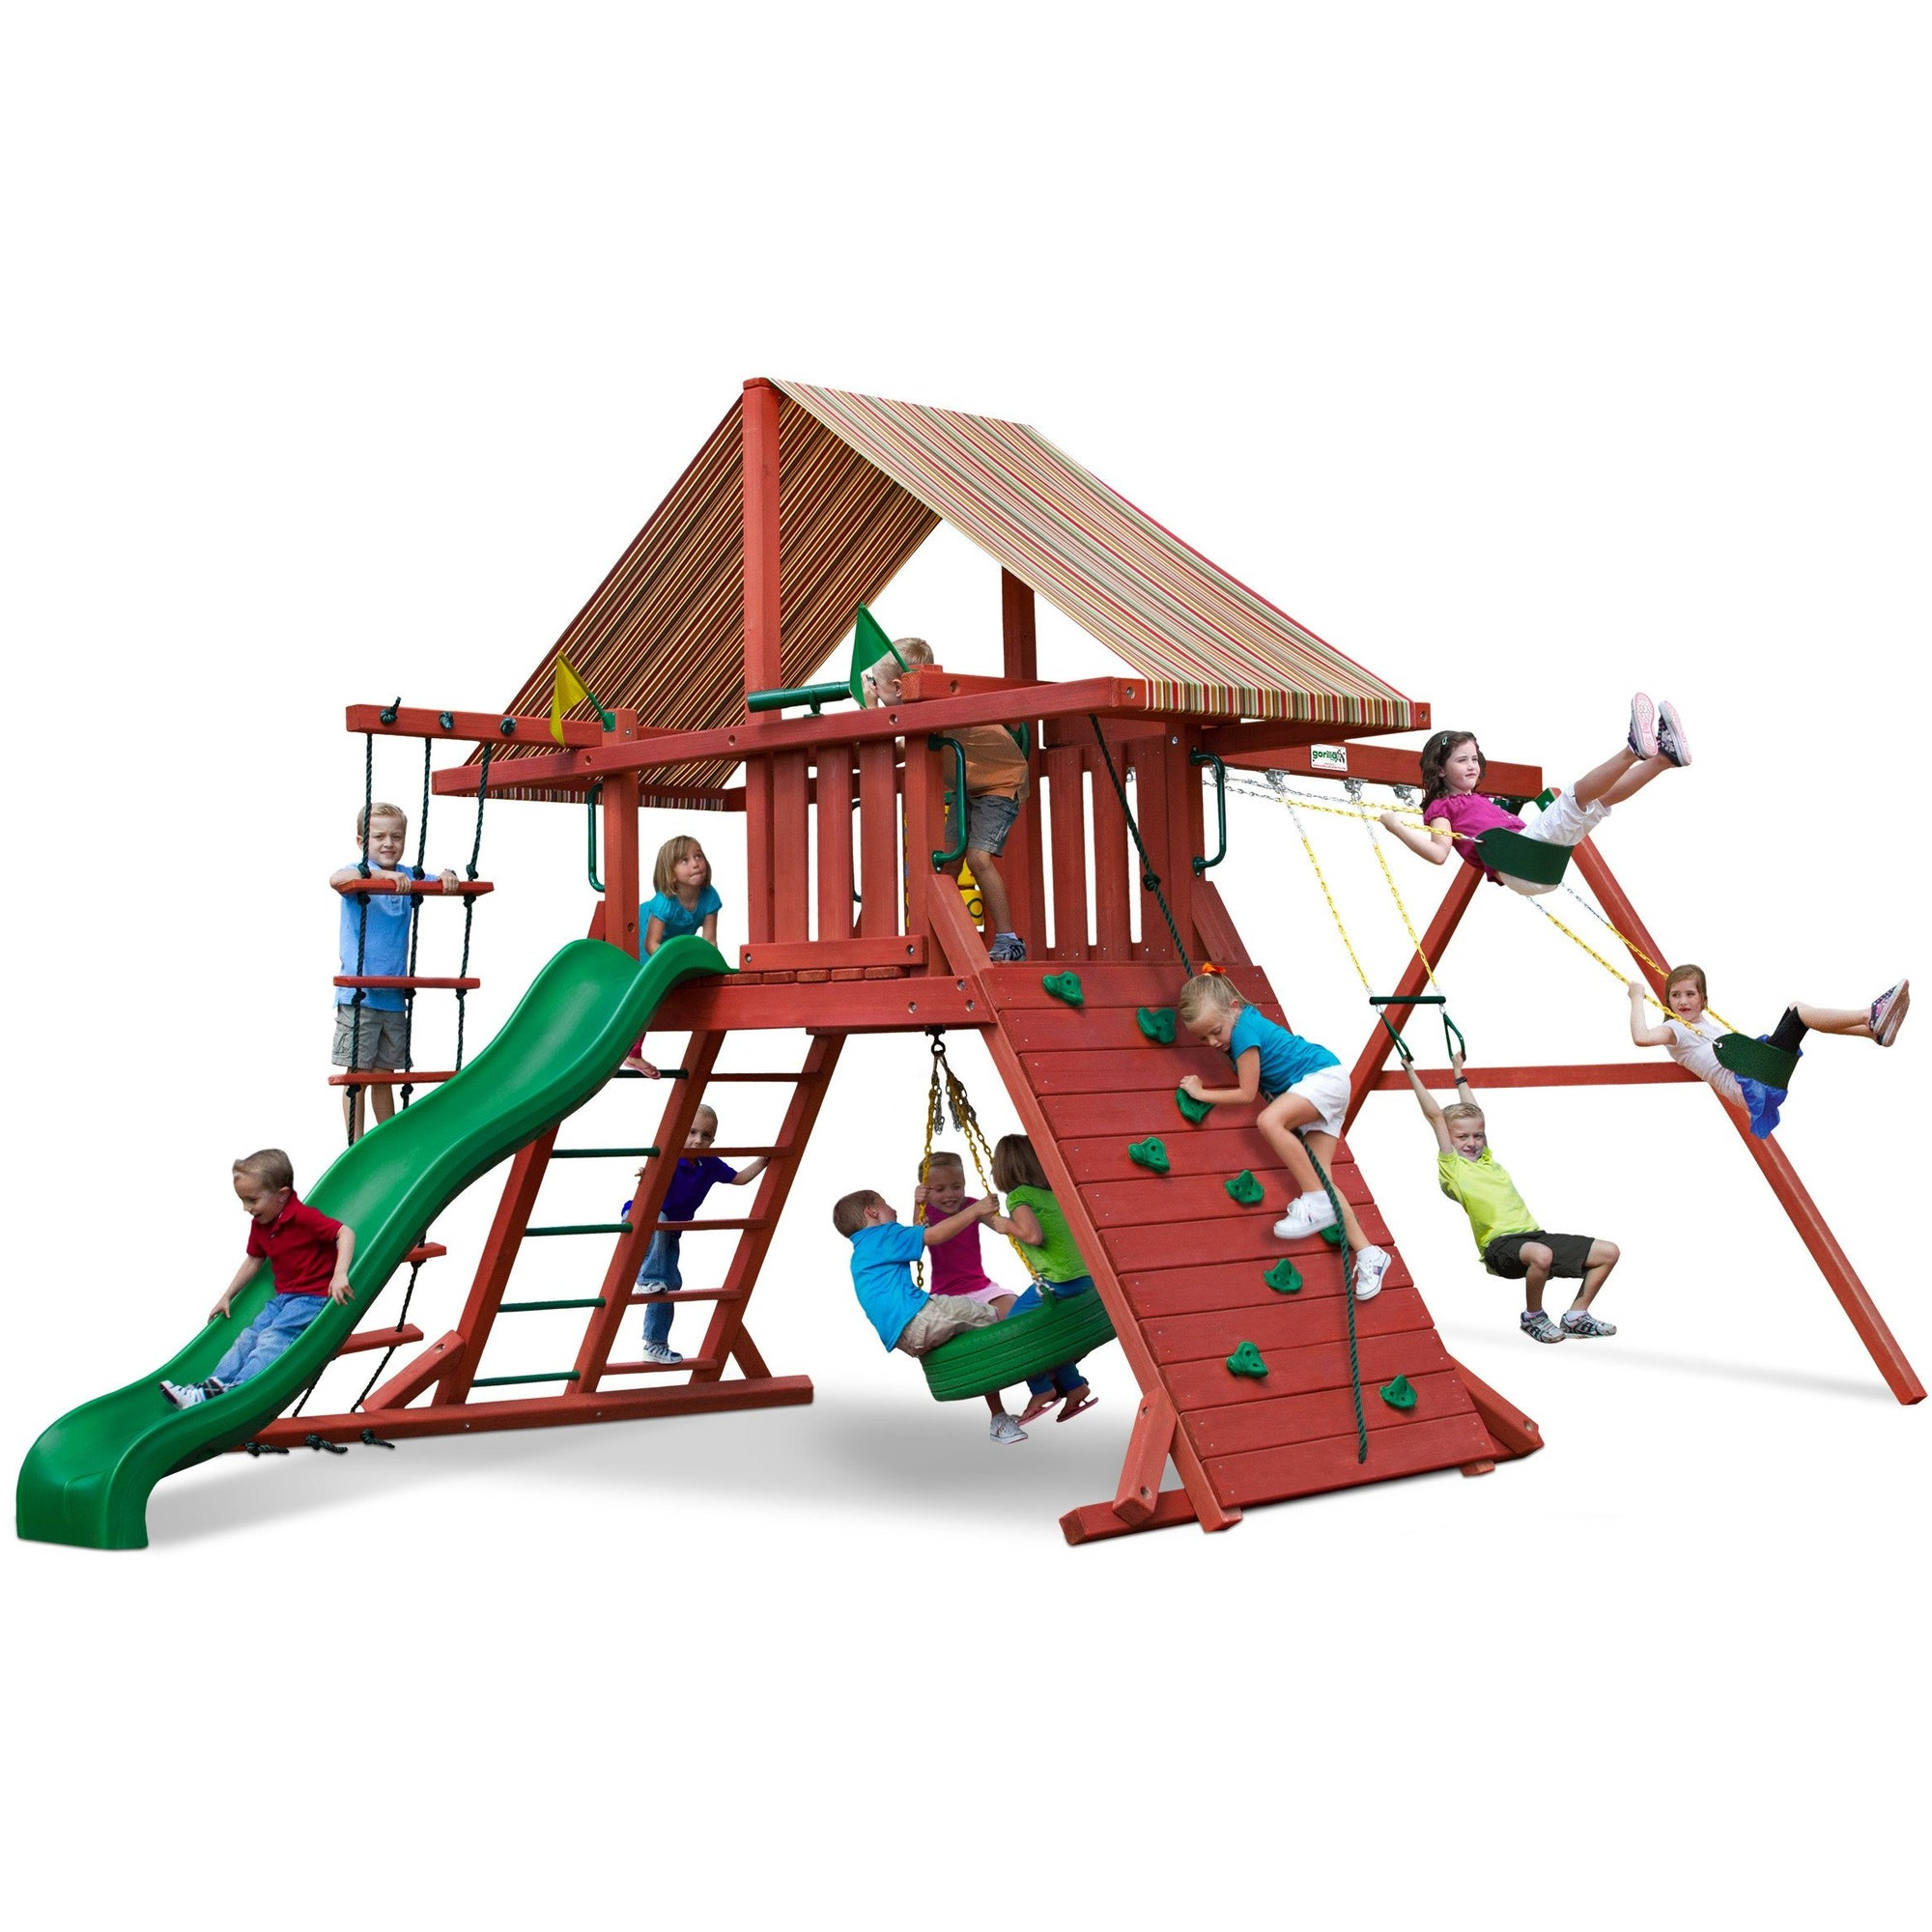 Gorilla Sun Climber I Playset w/ Sunbrella® Brannon Redwood Canopy 01-0026 - Swings and More